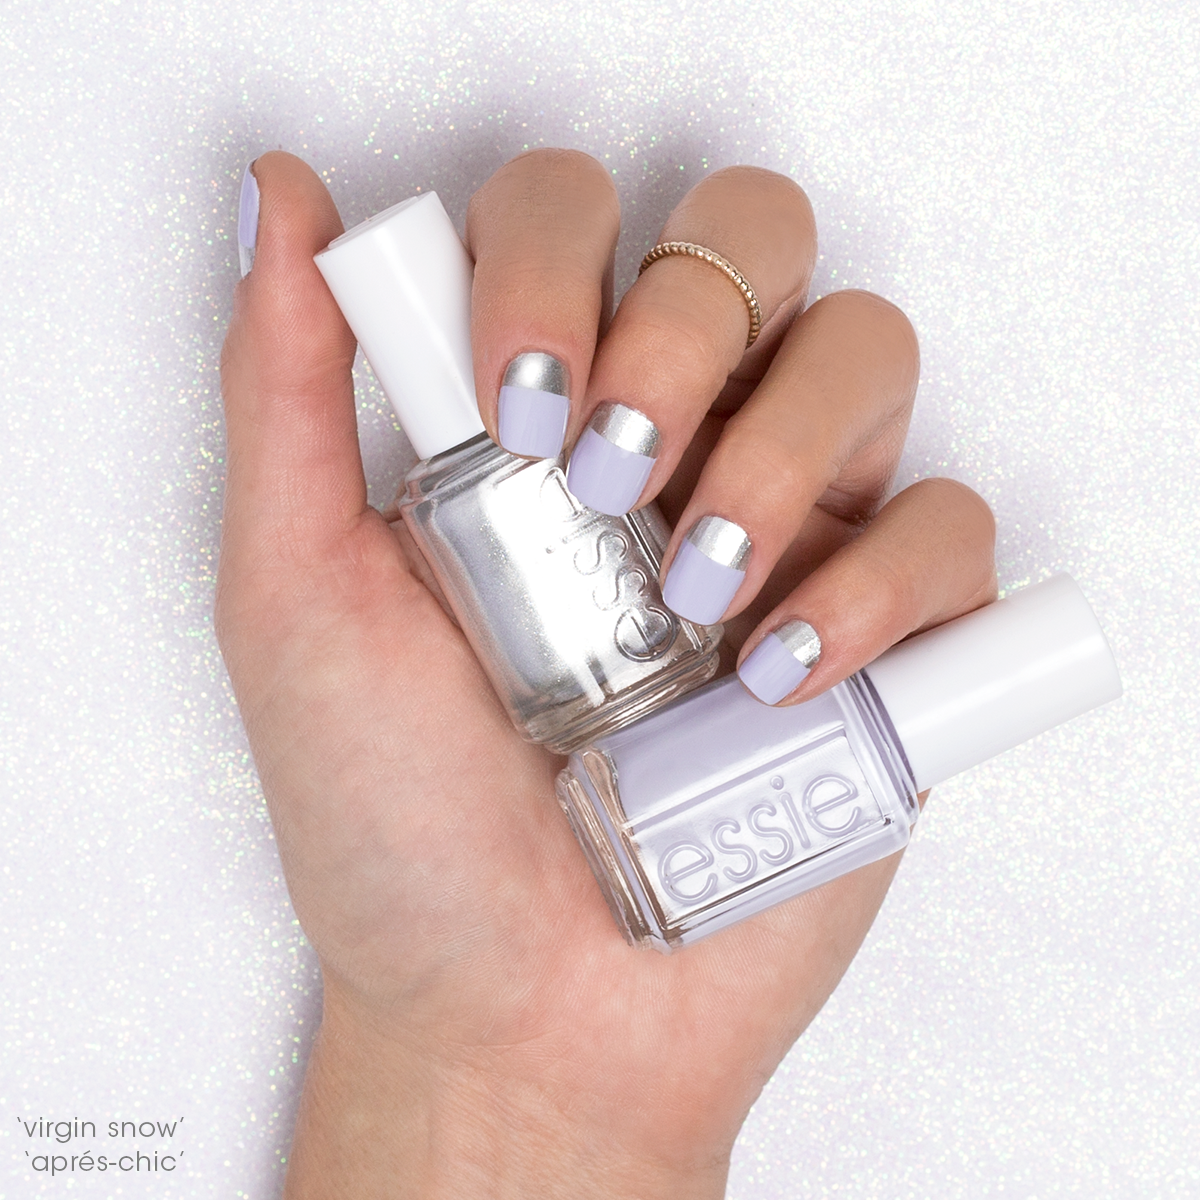 Chalet season is here! Toast it with the chic, lavender shade of ...